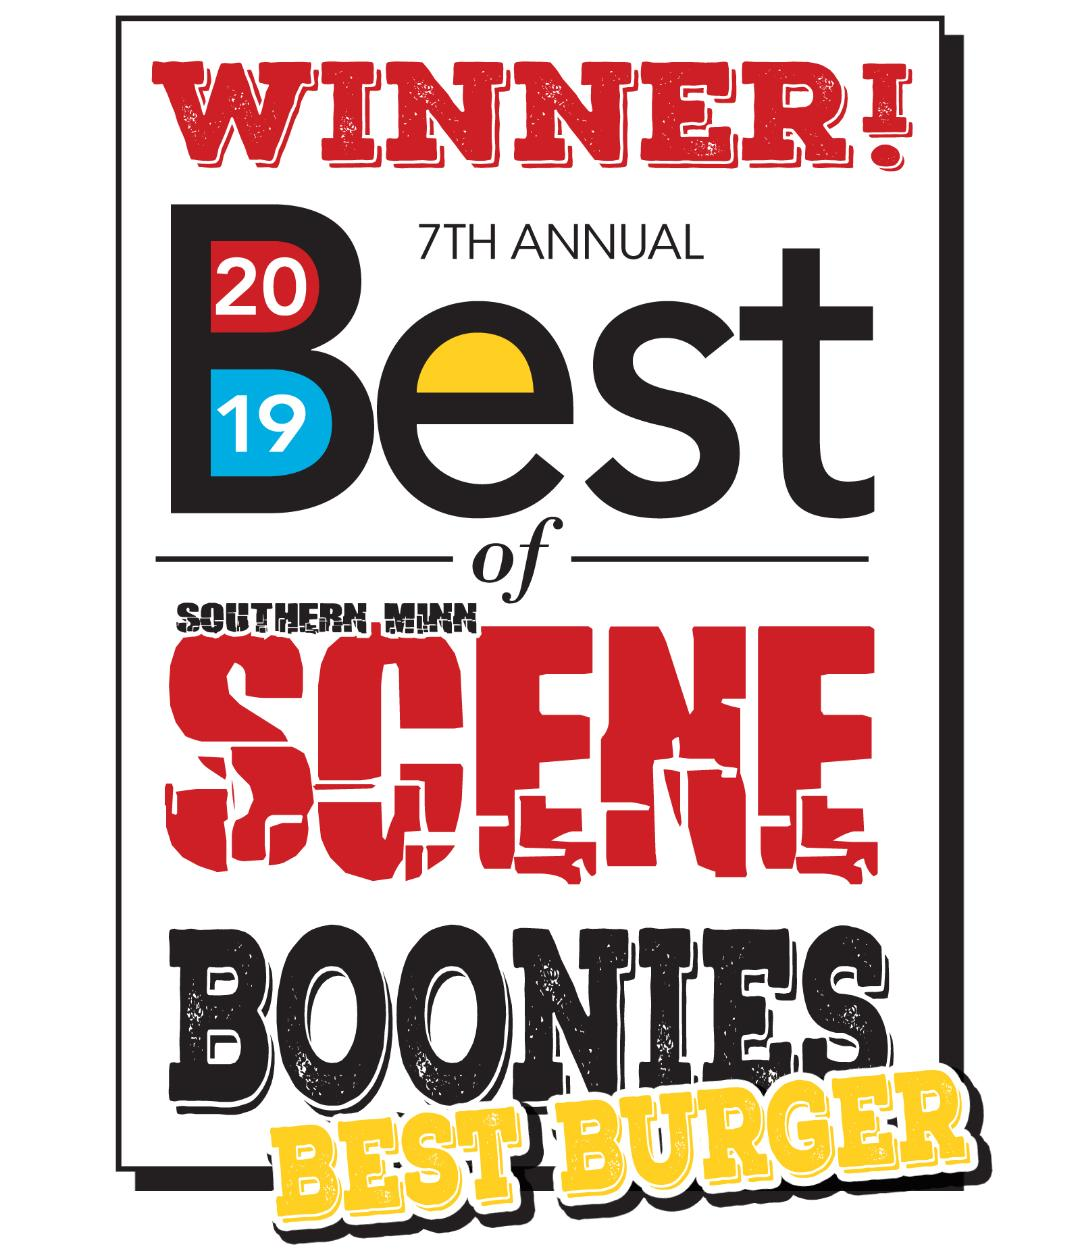 Boonies_Best Burger-1